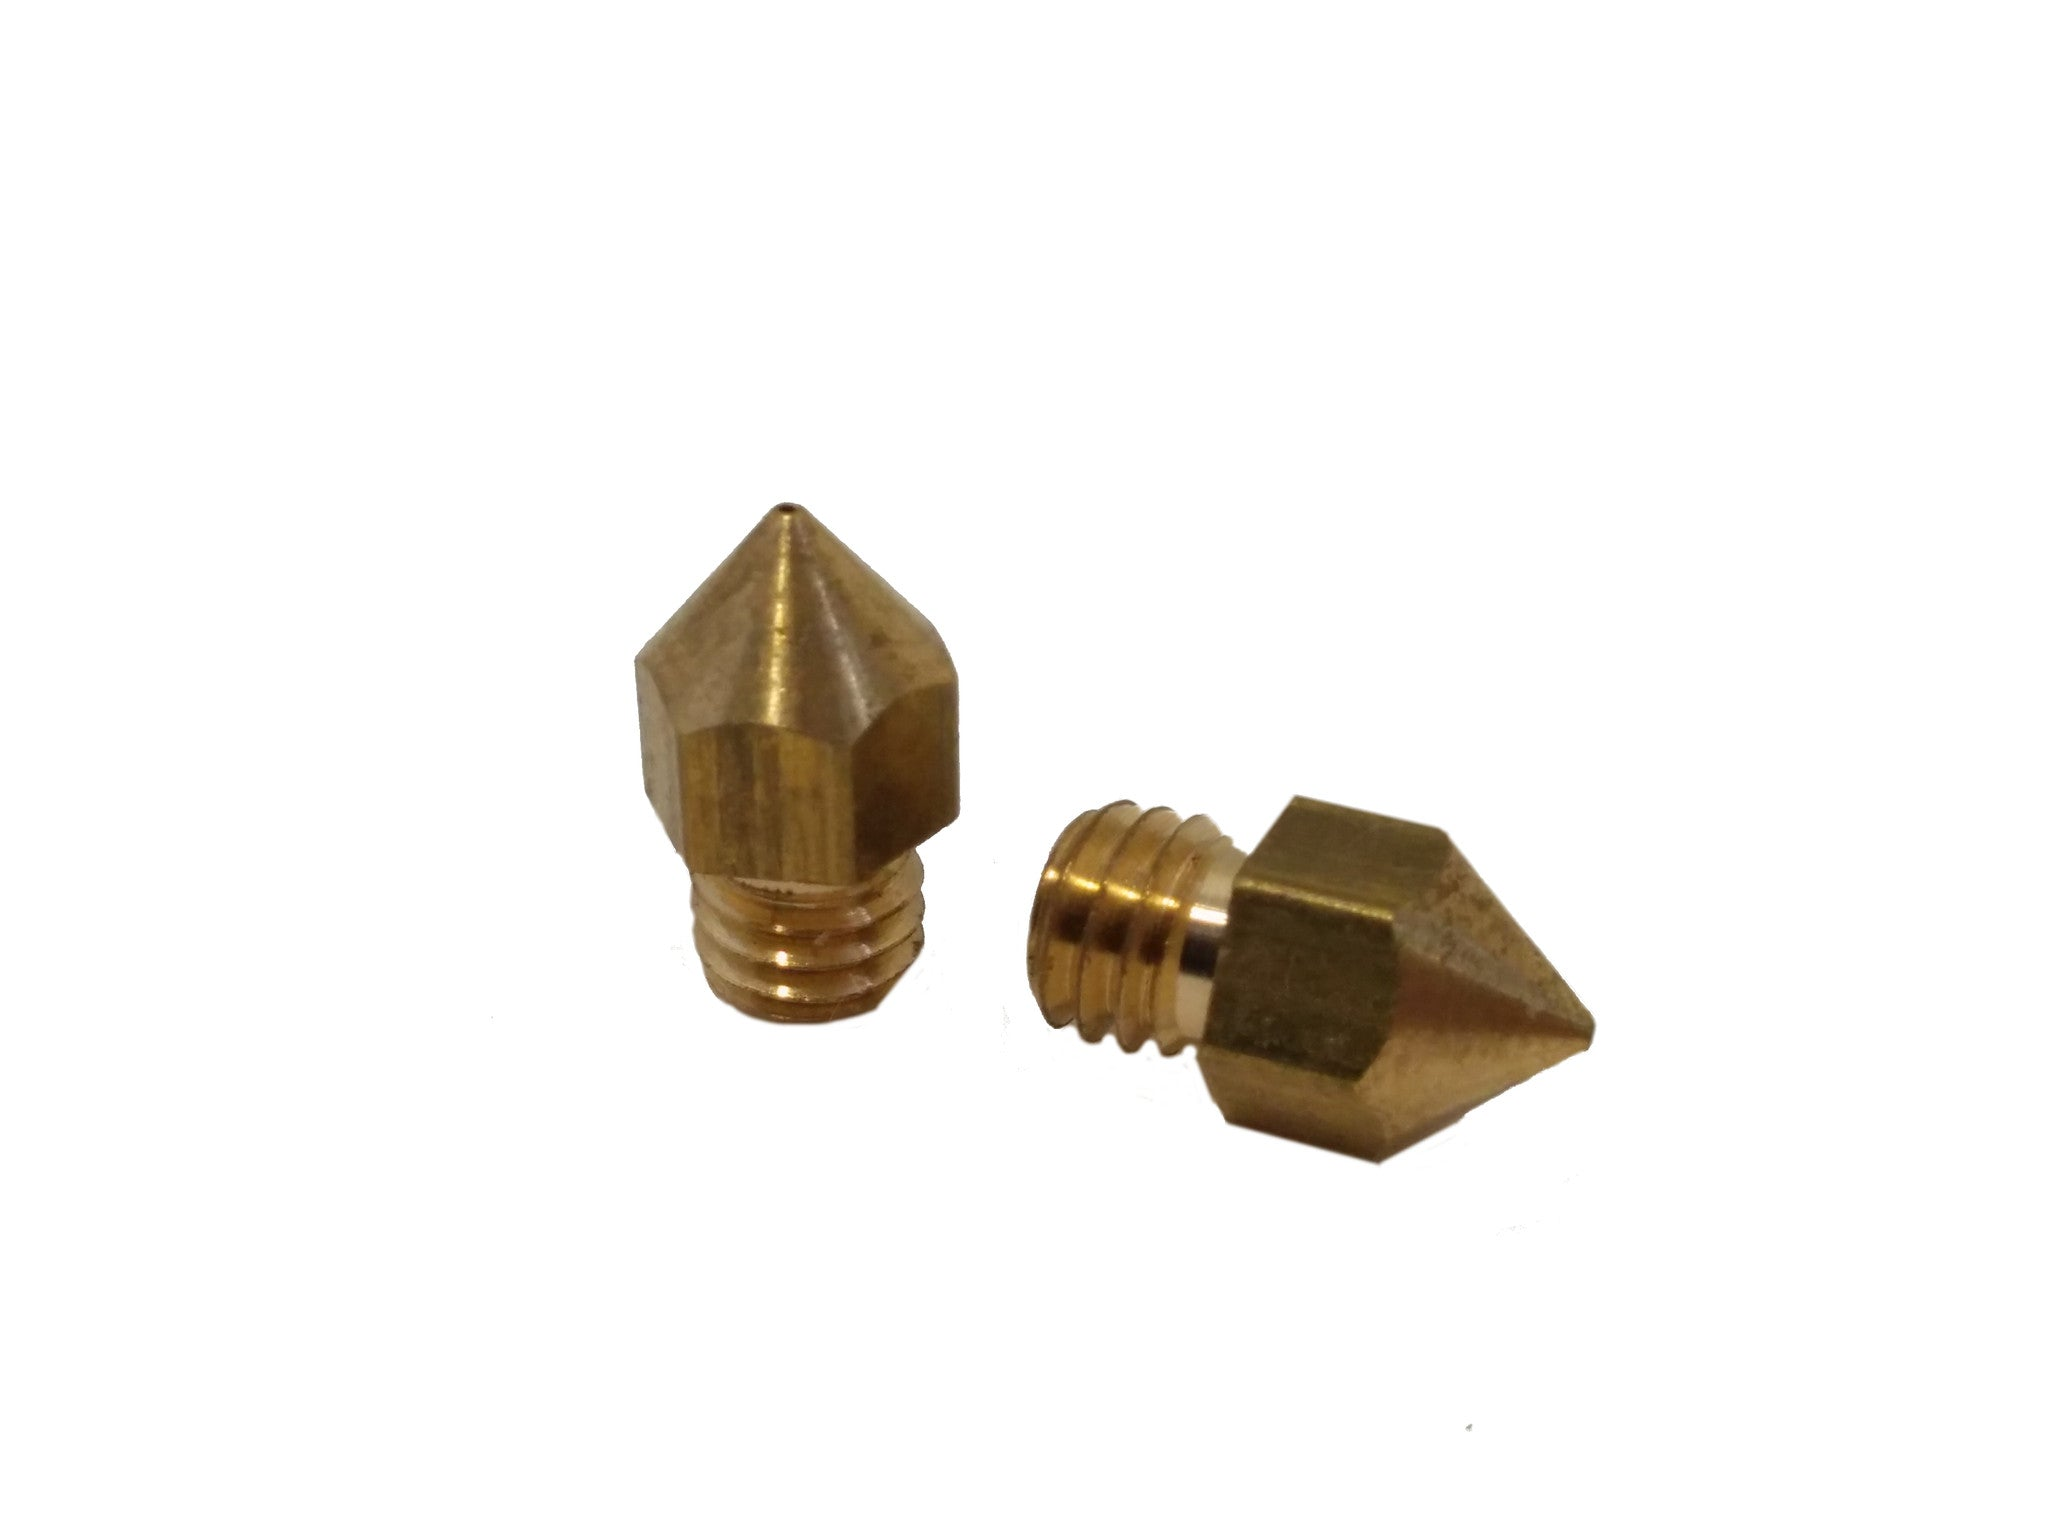 0.4mm Nozzle for 3D Printers